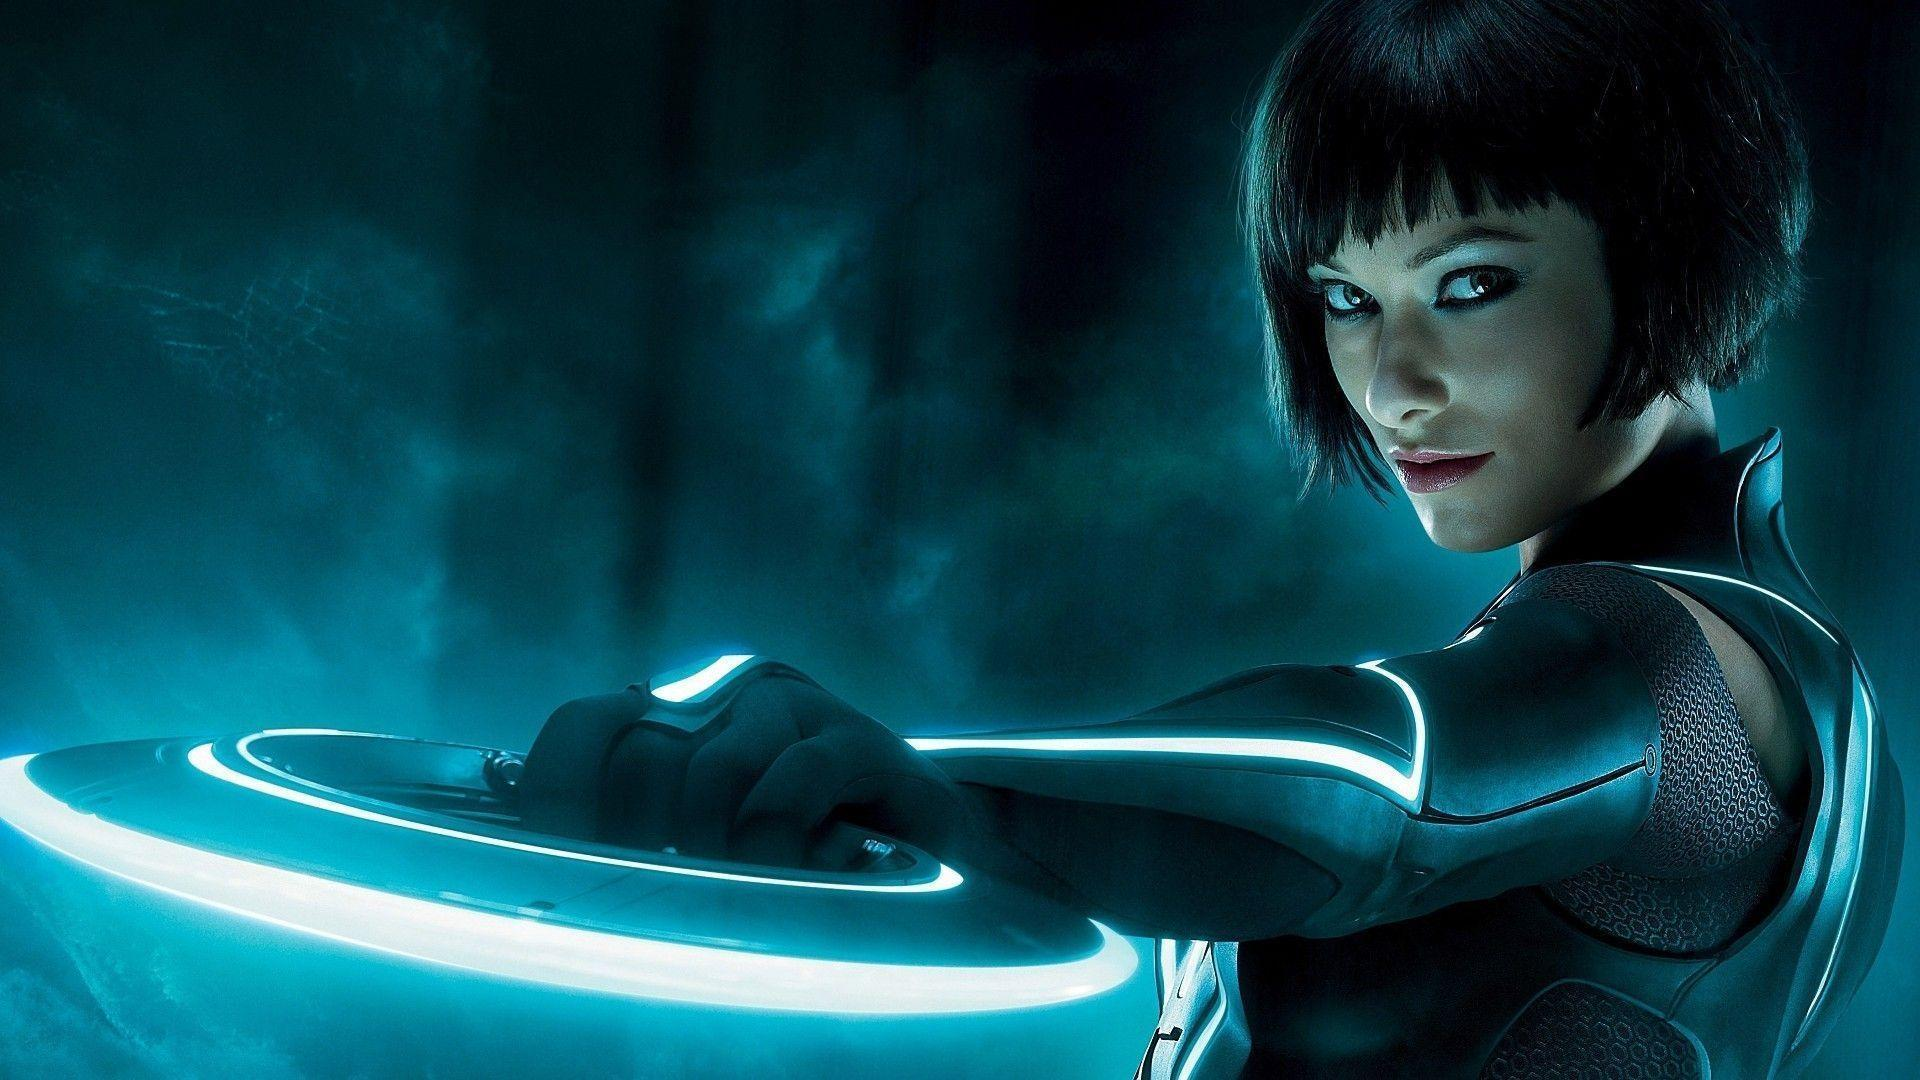 Tron Legacy Olivia Wilde Wallpapers - Wallpaper Cave